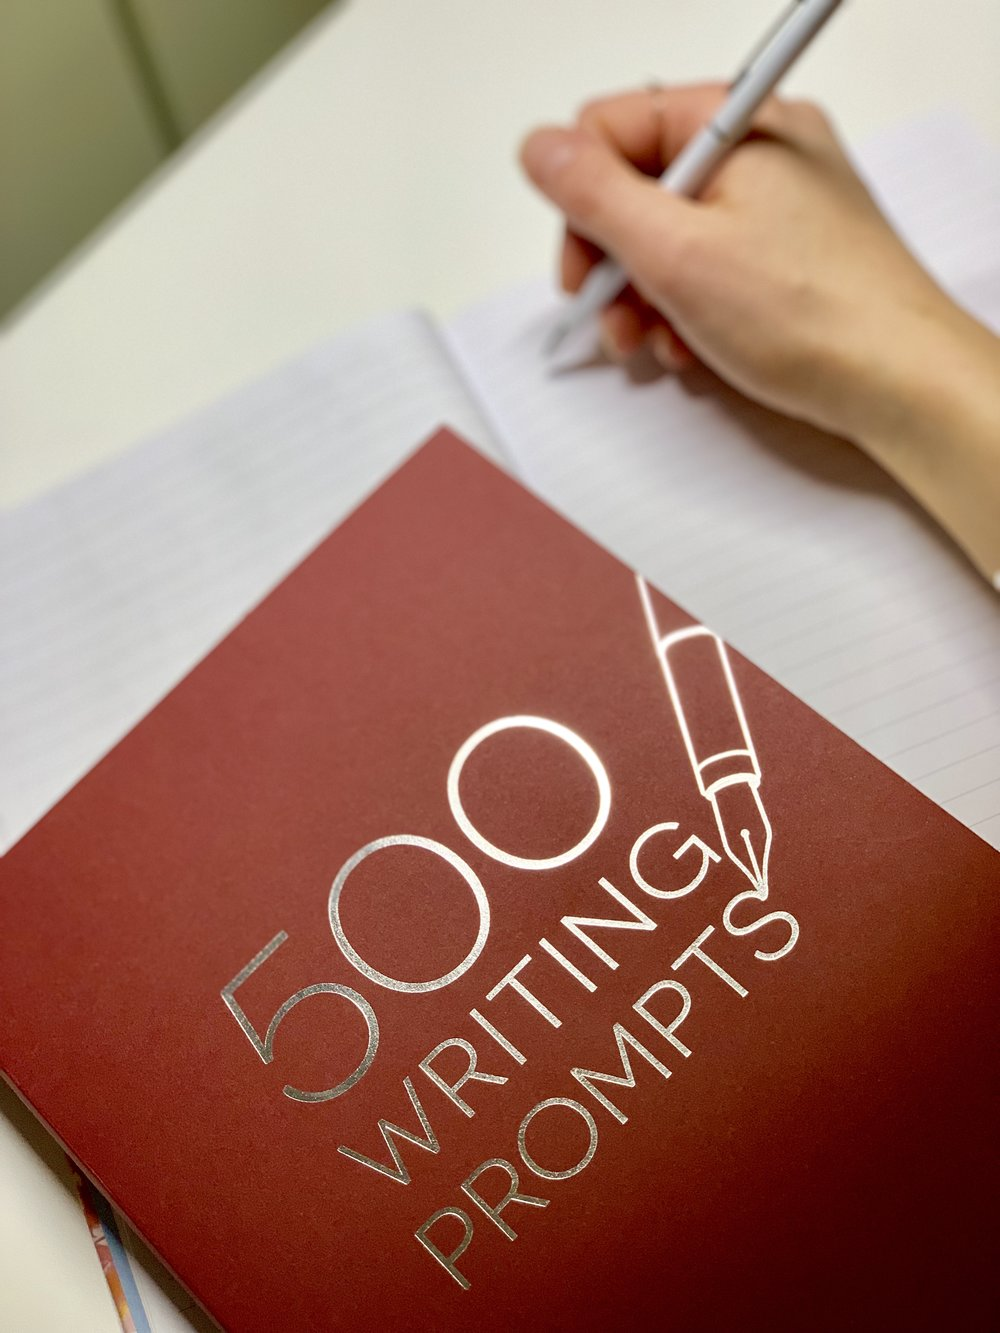 500 writing prompts notebook (From Chapters/ Indigo)